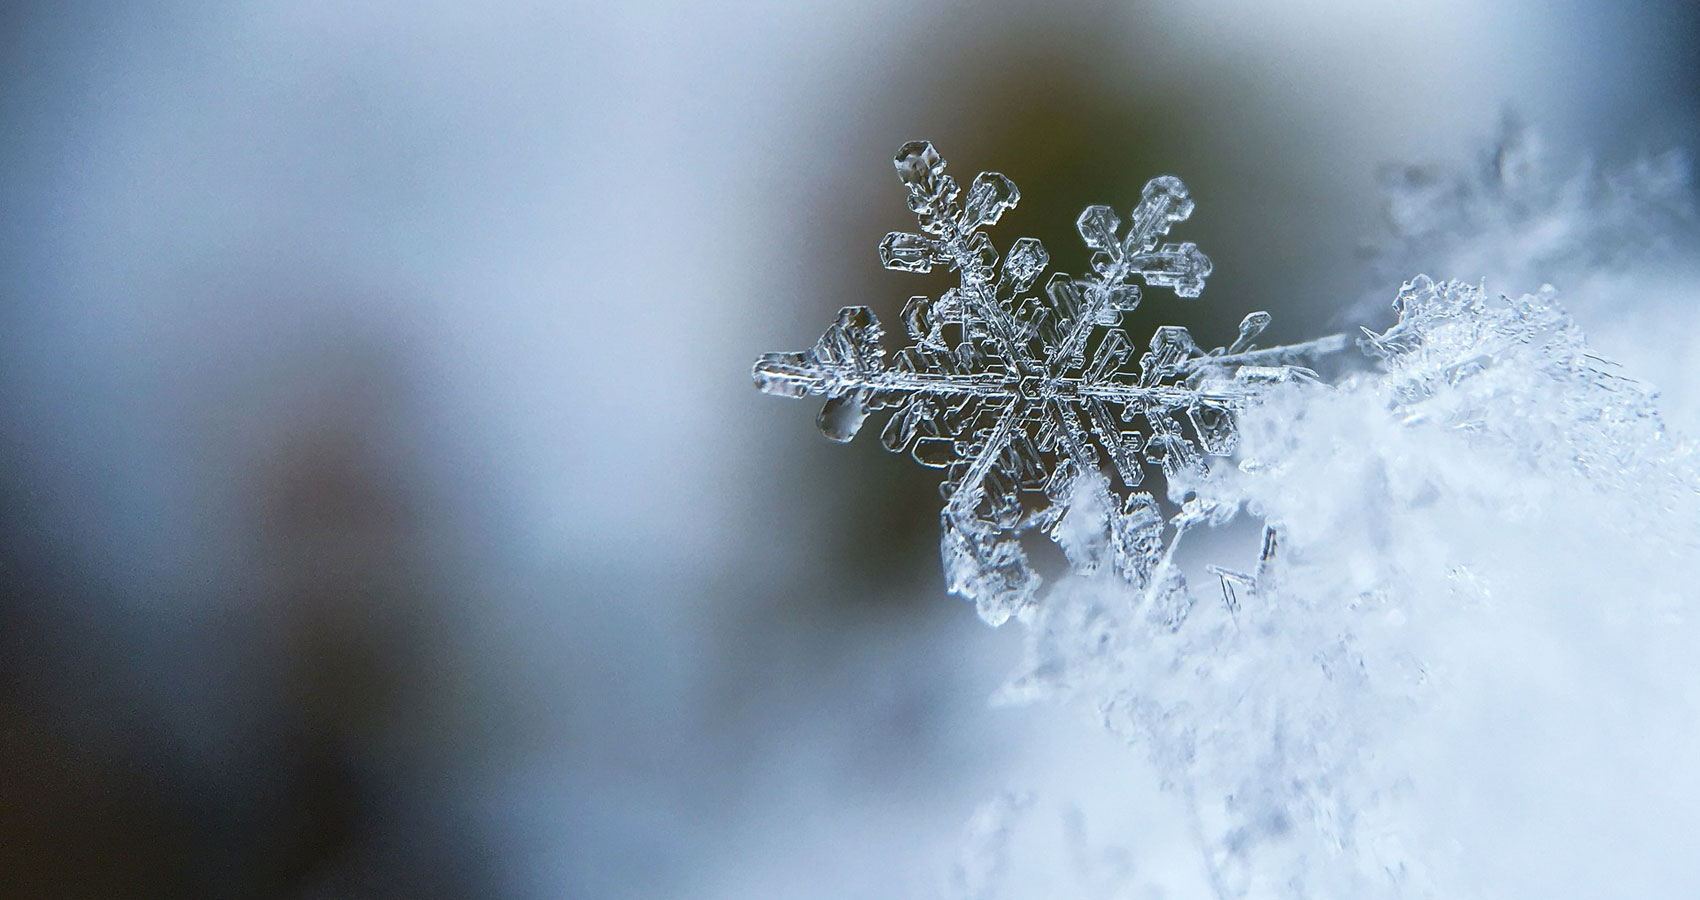 Winter's Purity, poetry written by Boris Simonovski at Spillwords.com